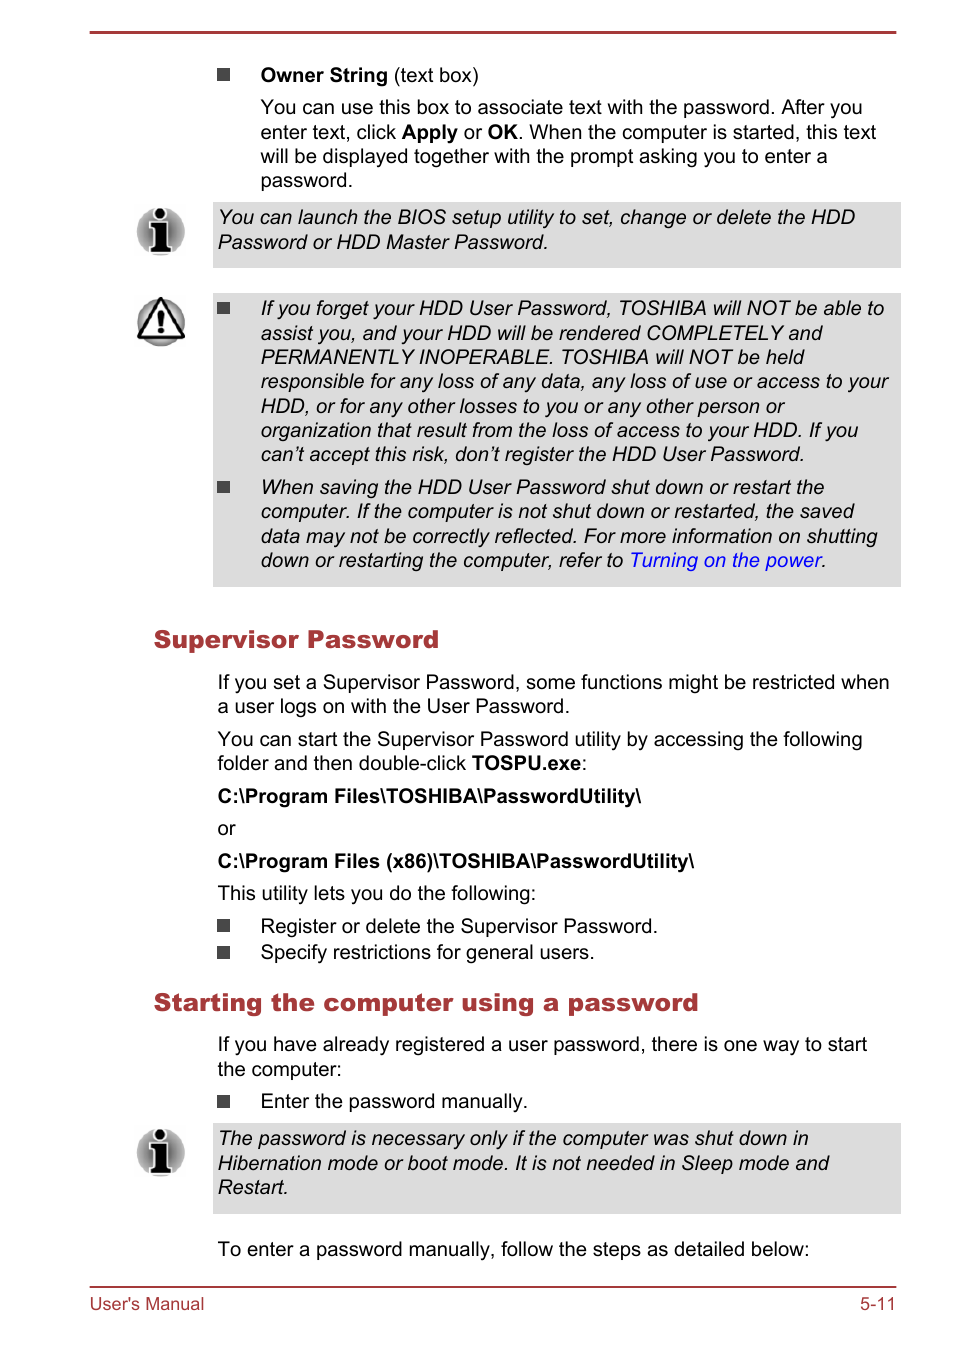 Supervisor password, Starting the computer using a password